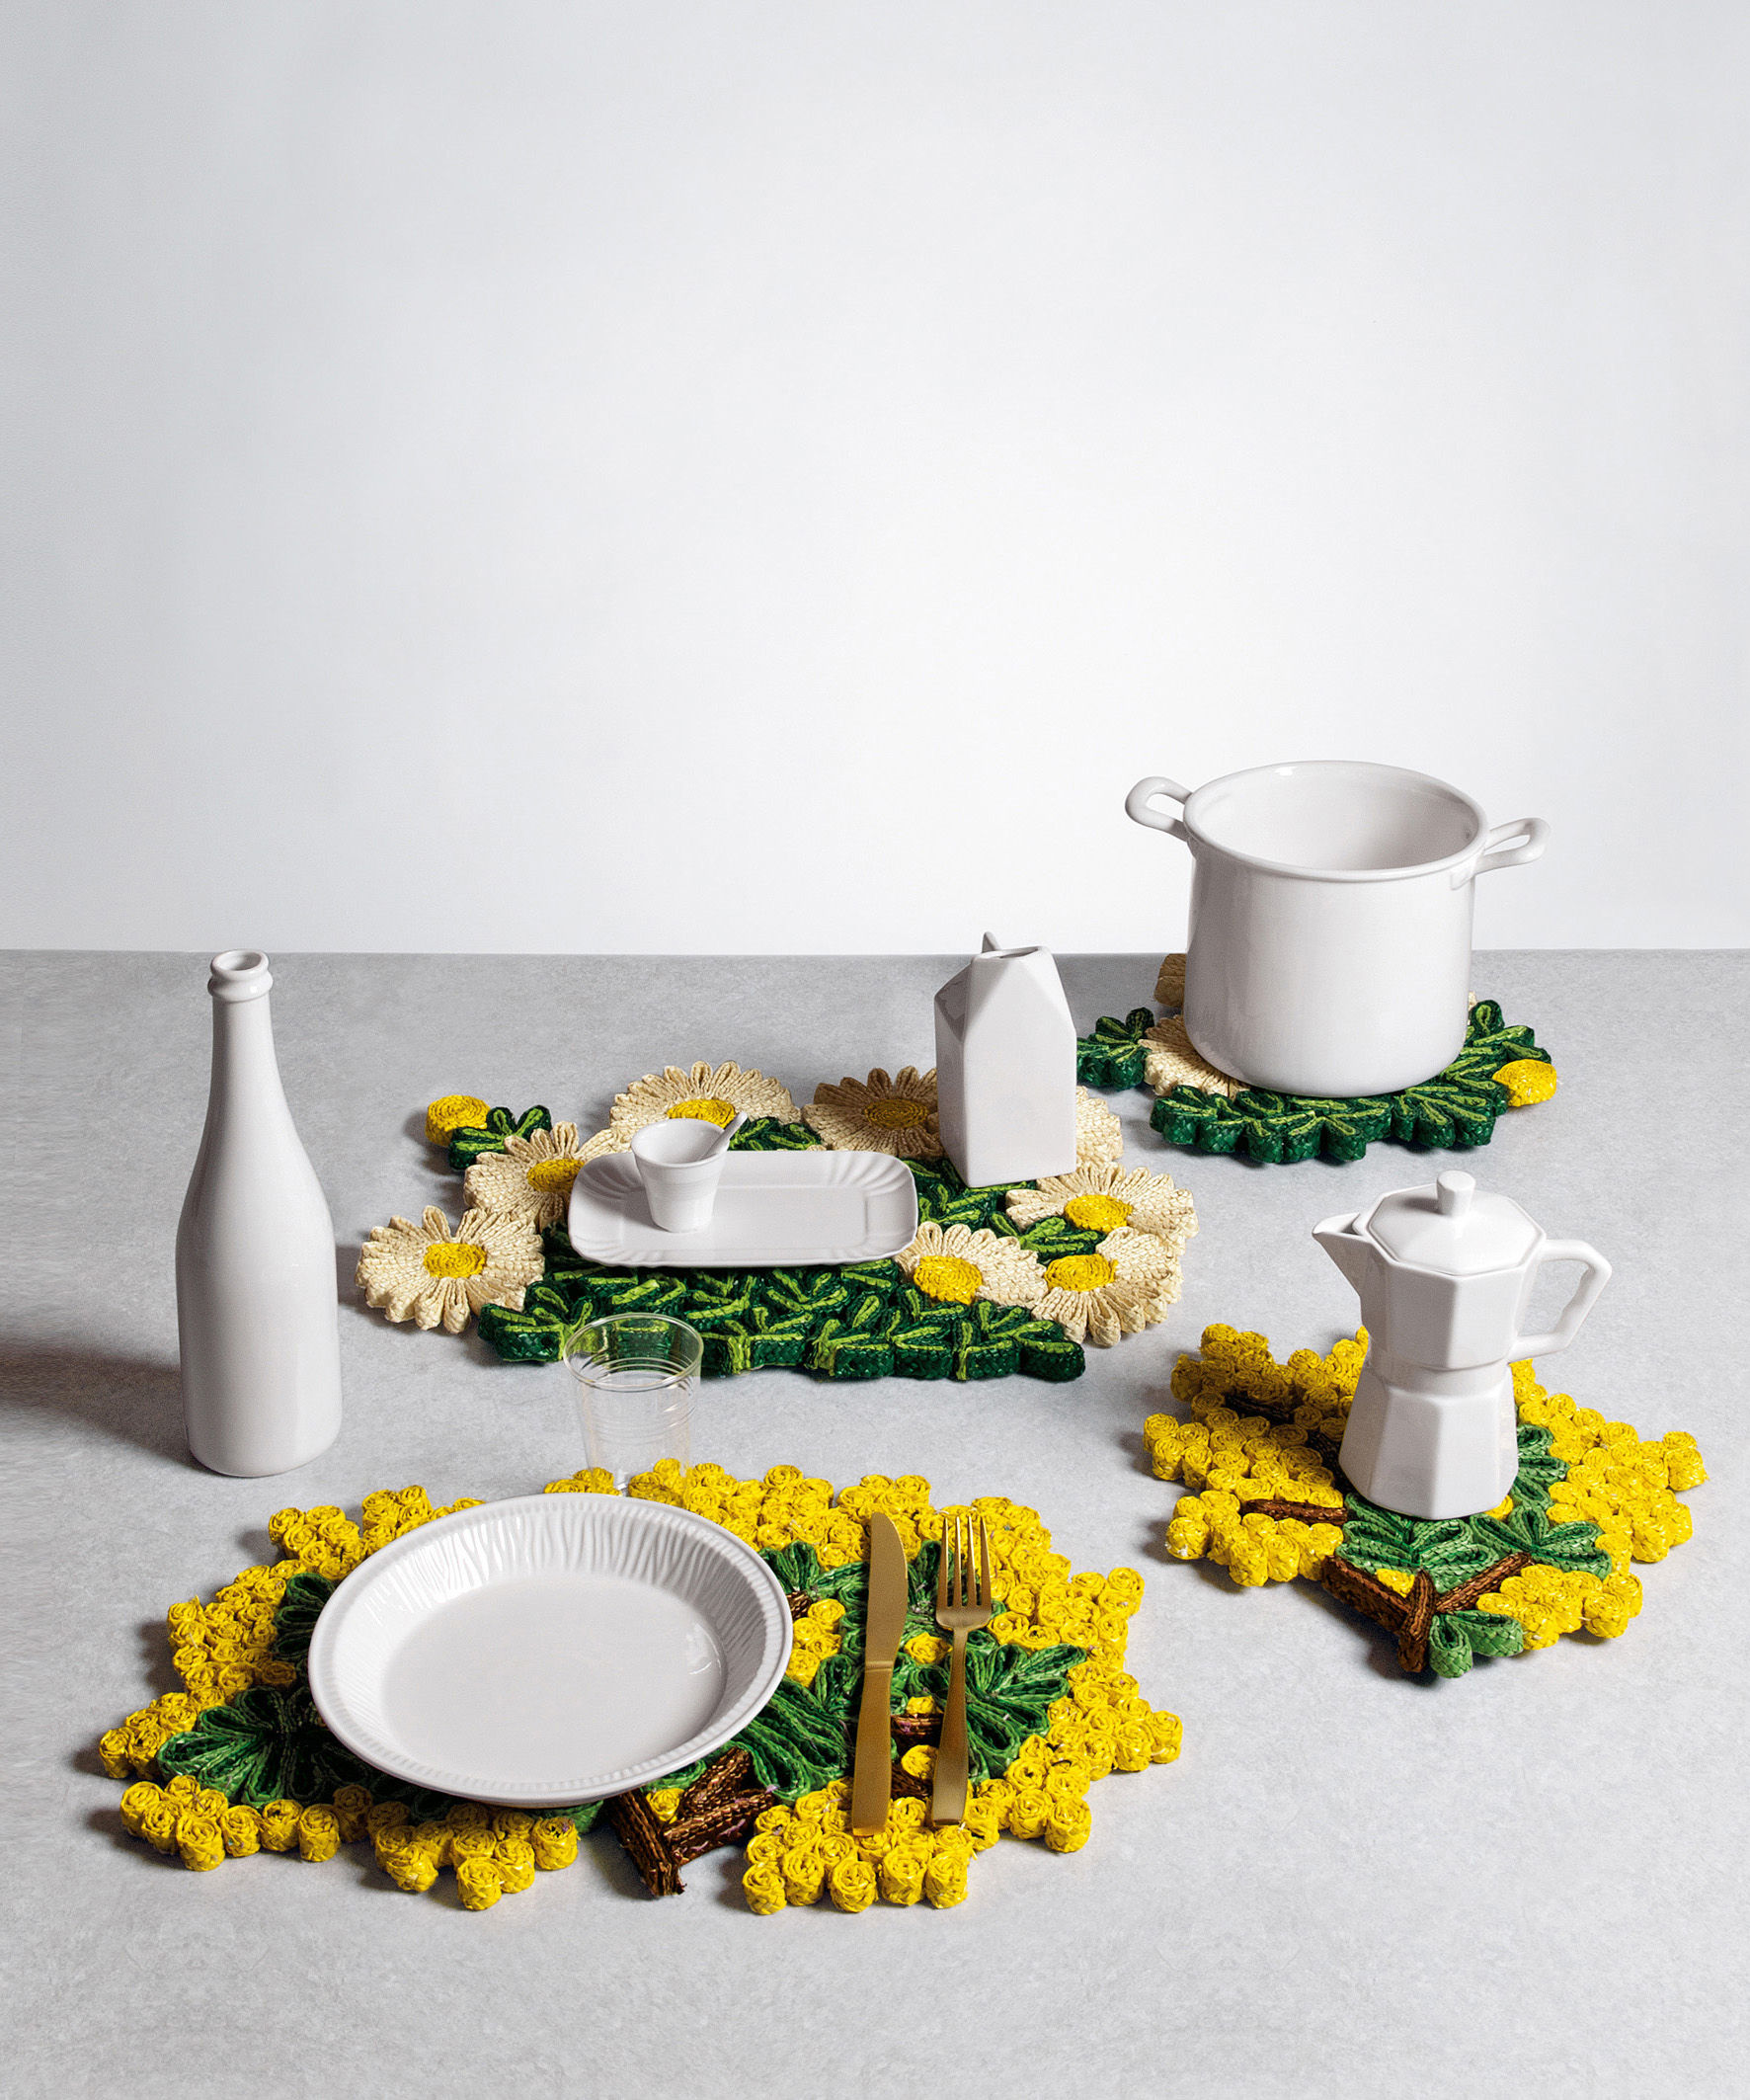 set de table florigraphie mimosa 50 x 35 cm jaune vert. Black Bedroom Furniture Sets. Home Design Ideas